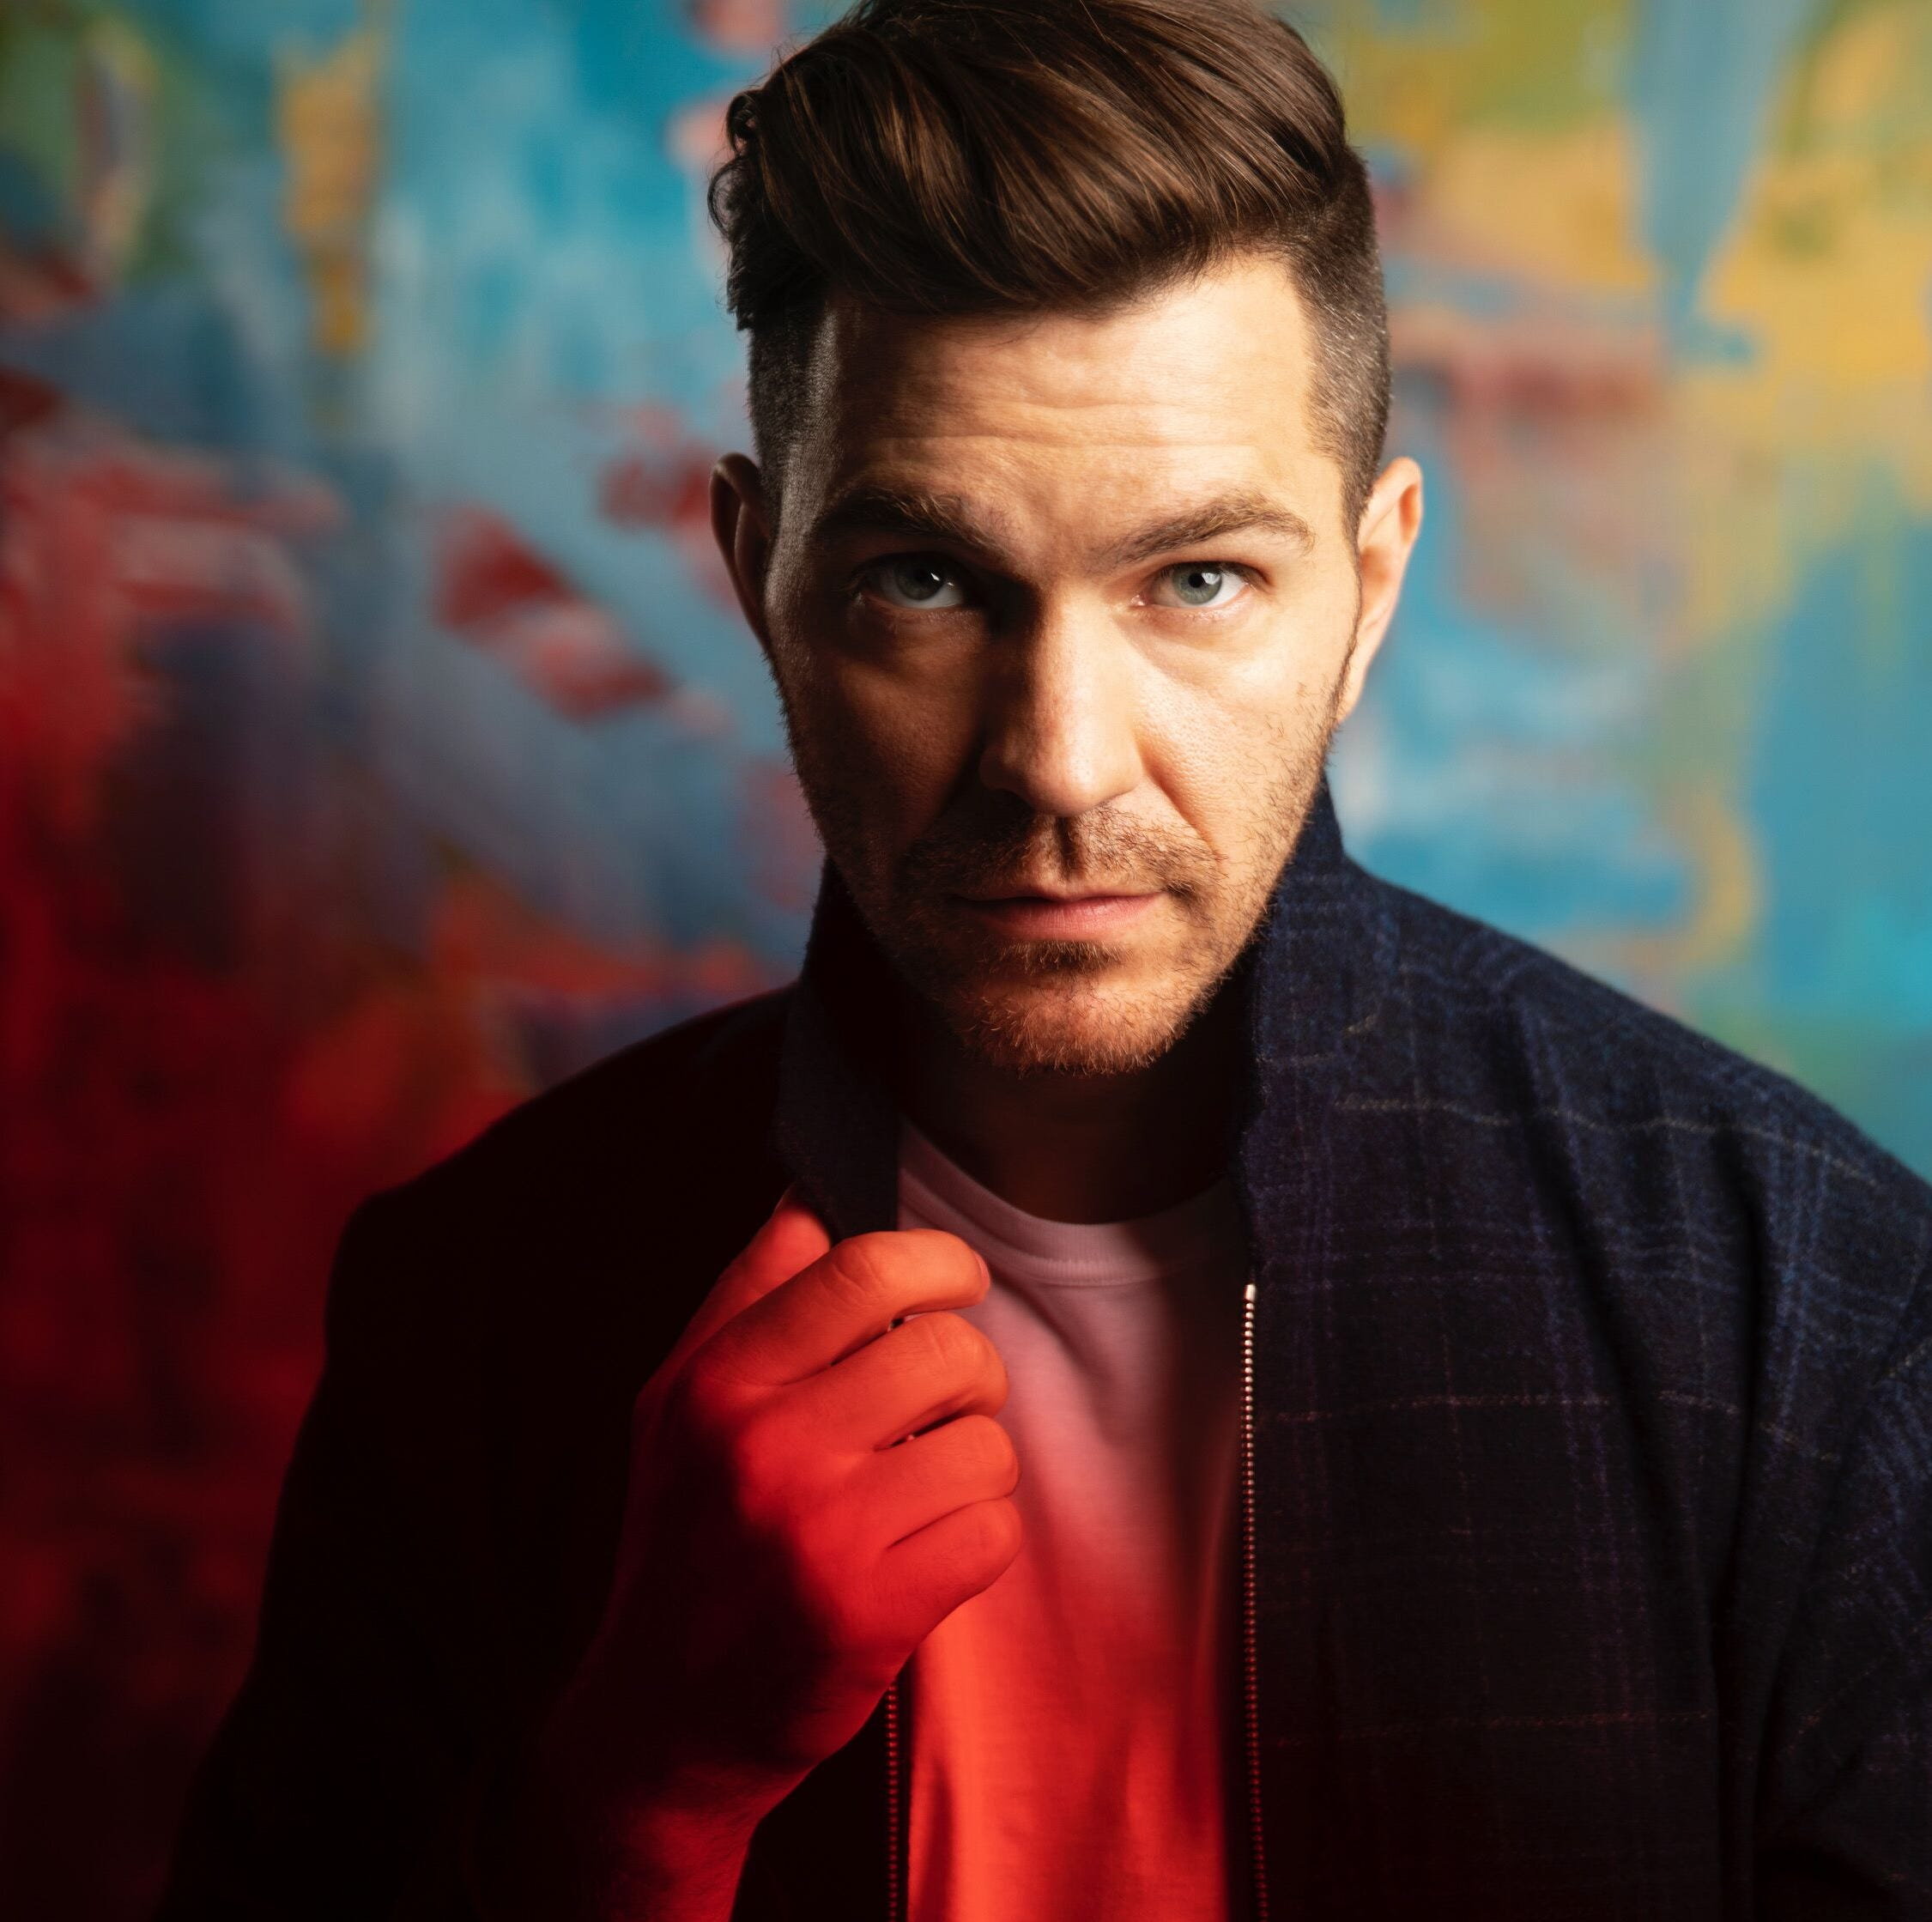 Pop singer Andy Grammer to play Ankeny's Pizza Fest